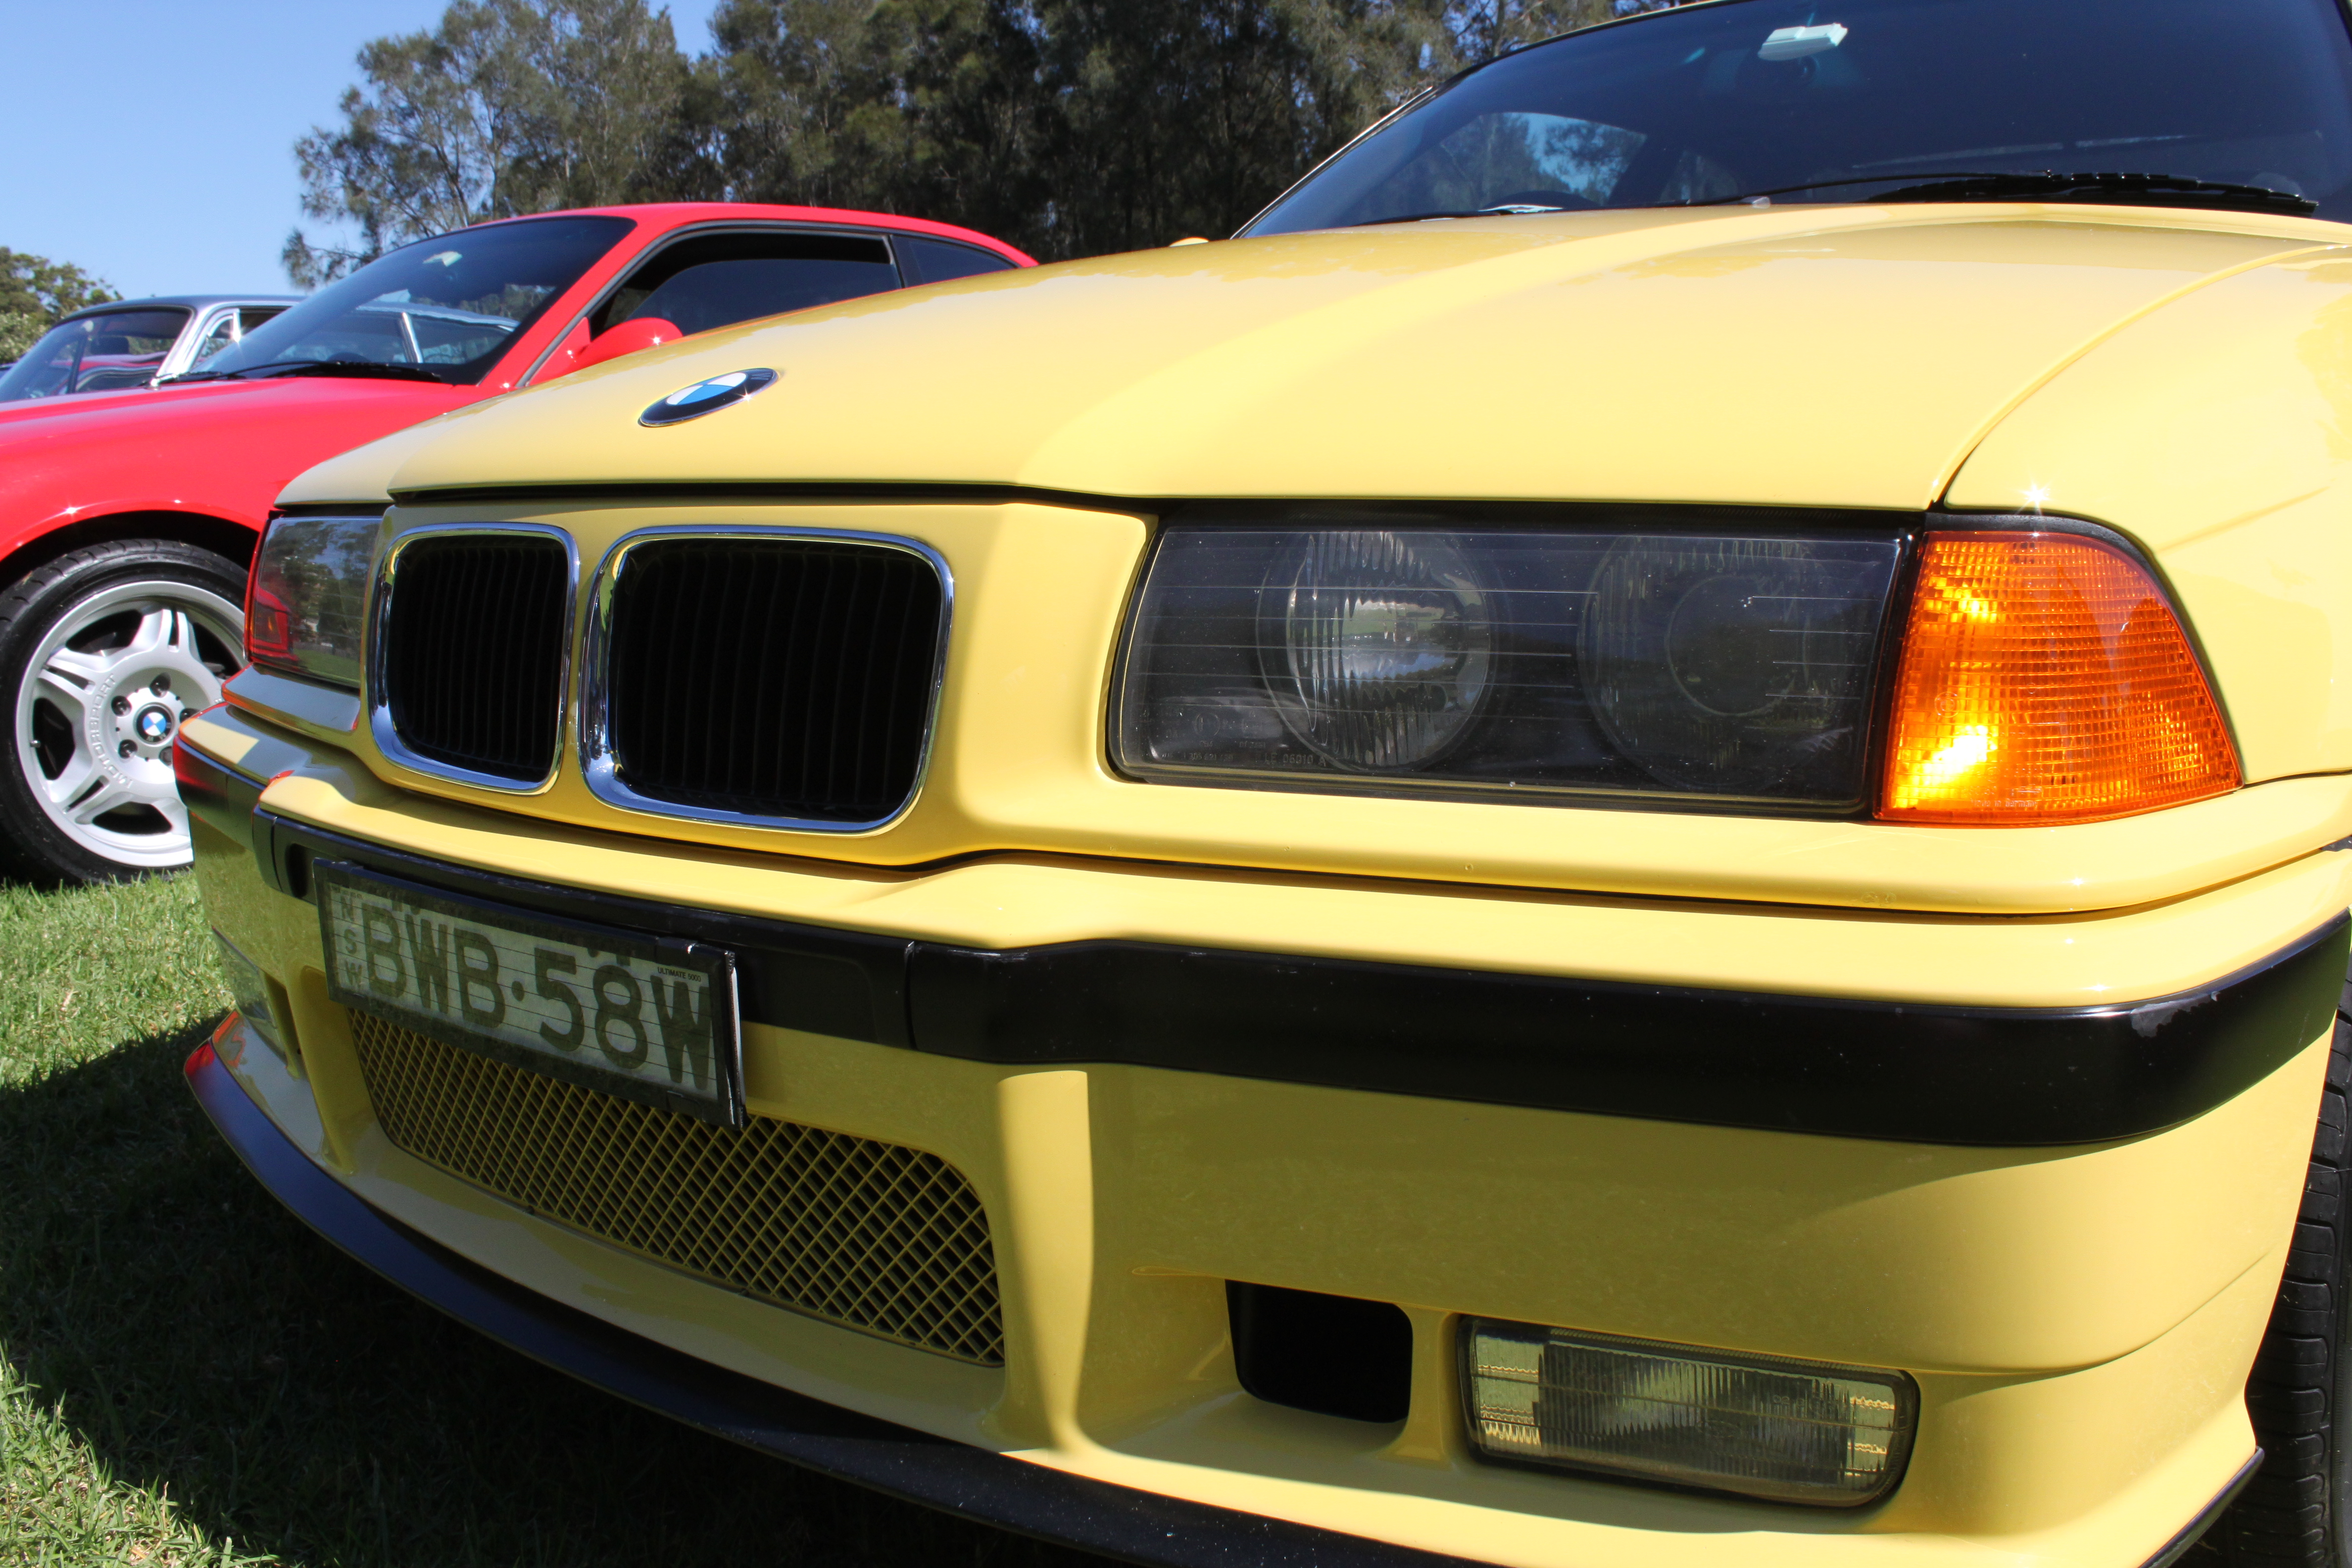 Filebmw E36 M3 16102472883 Wikimedia Commons Bmw